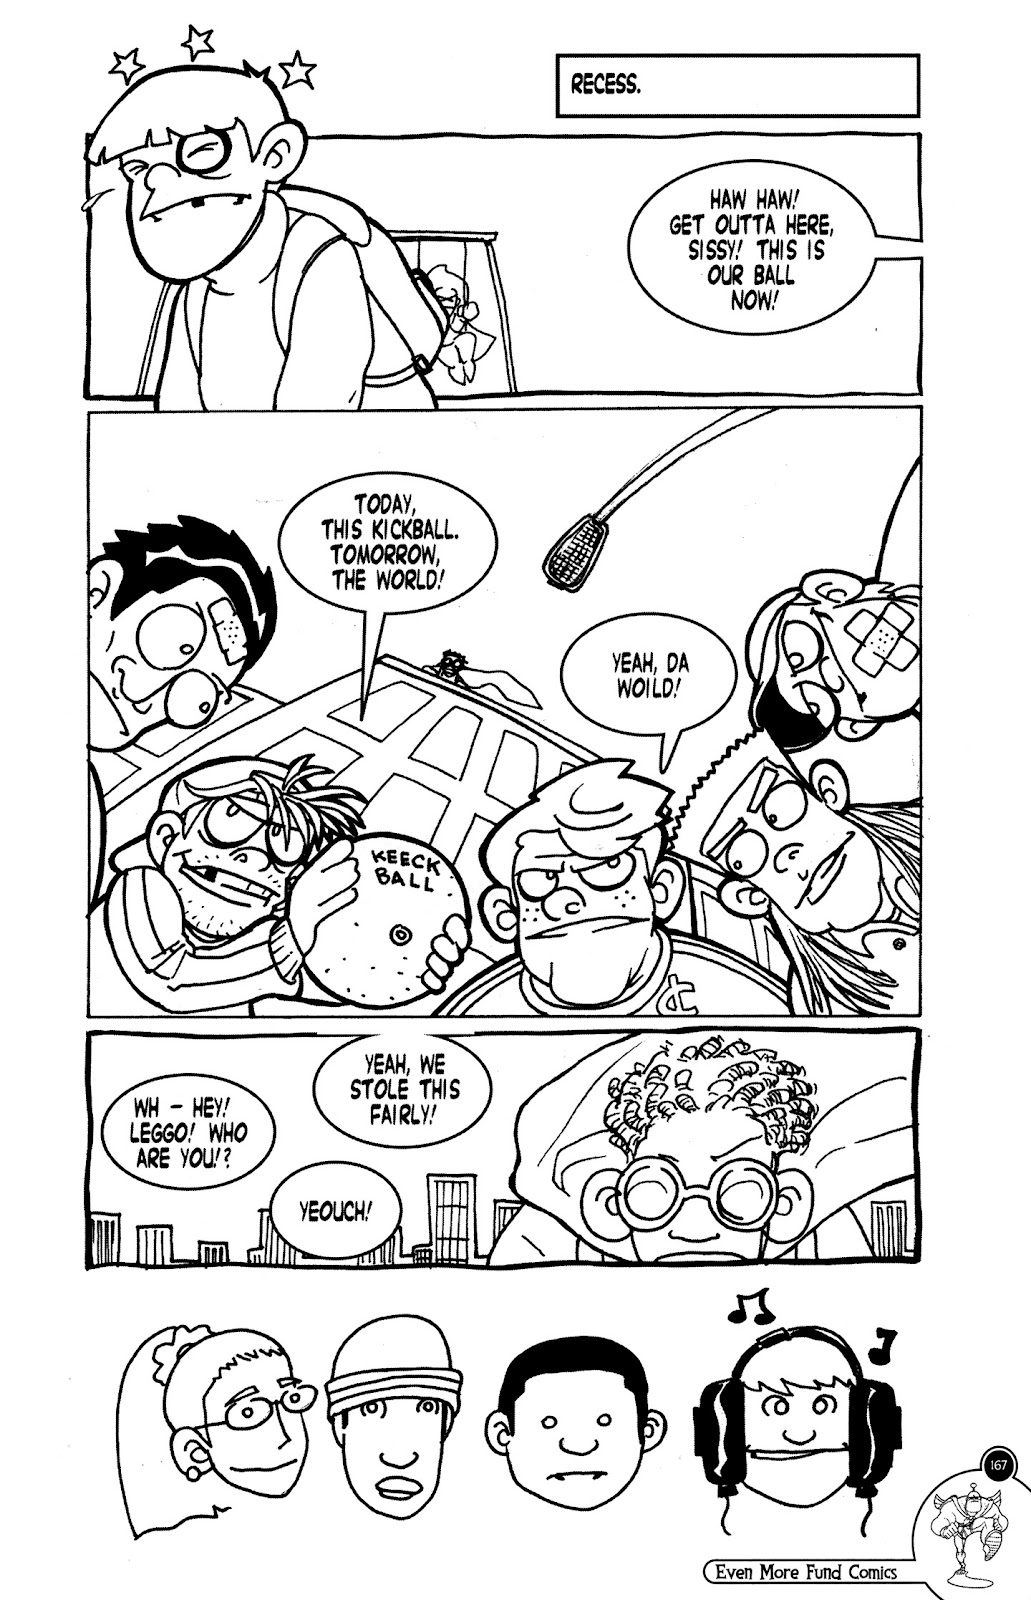 Read online Even More Fund Comics comic -  Issue # TPB (Part 2) - 70